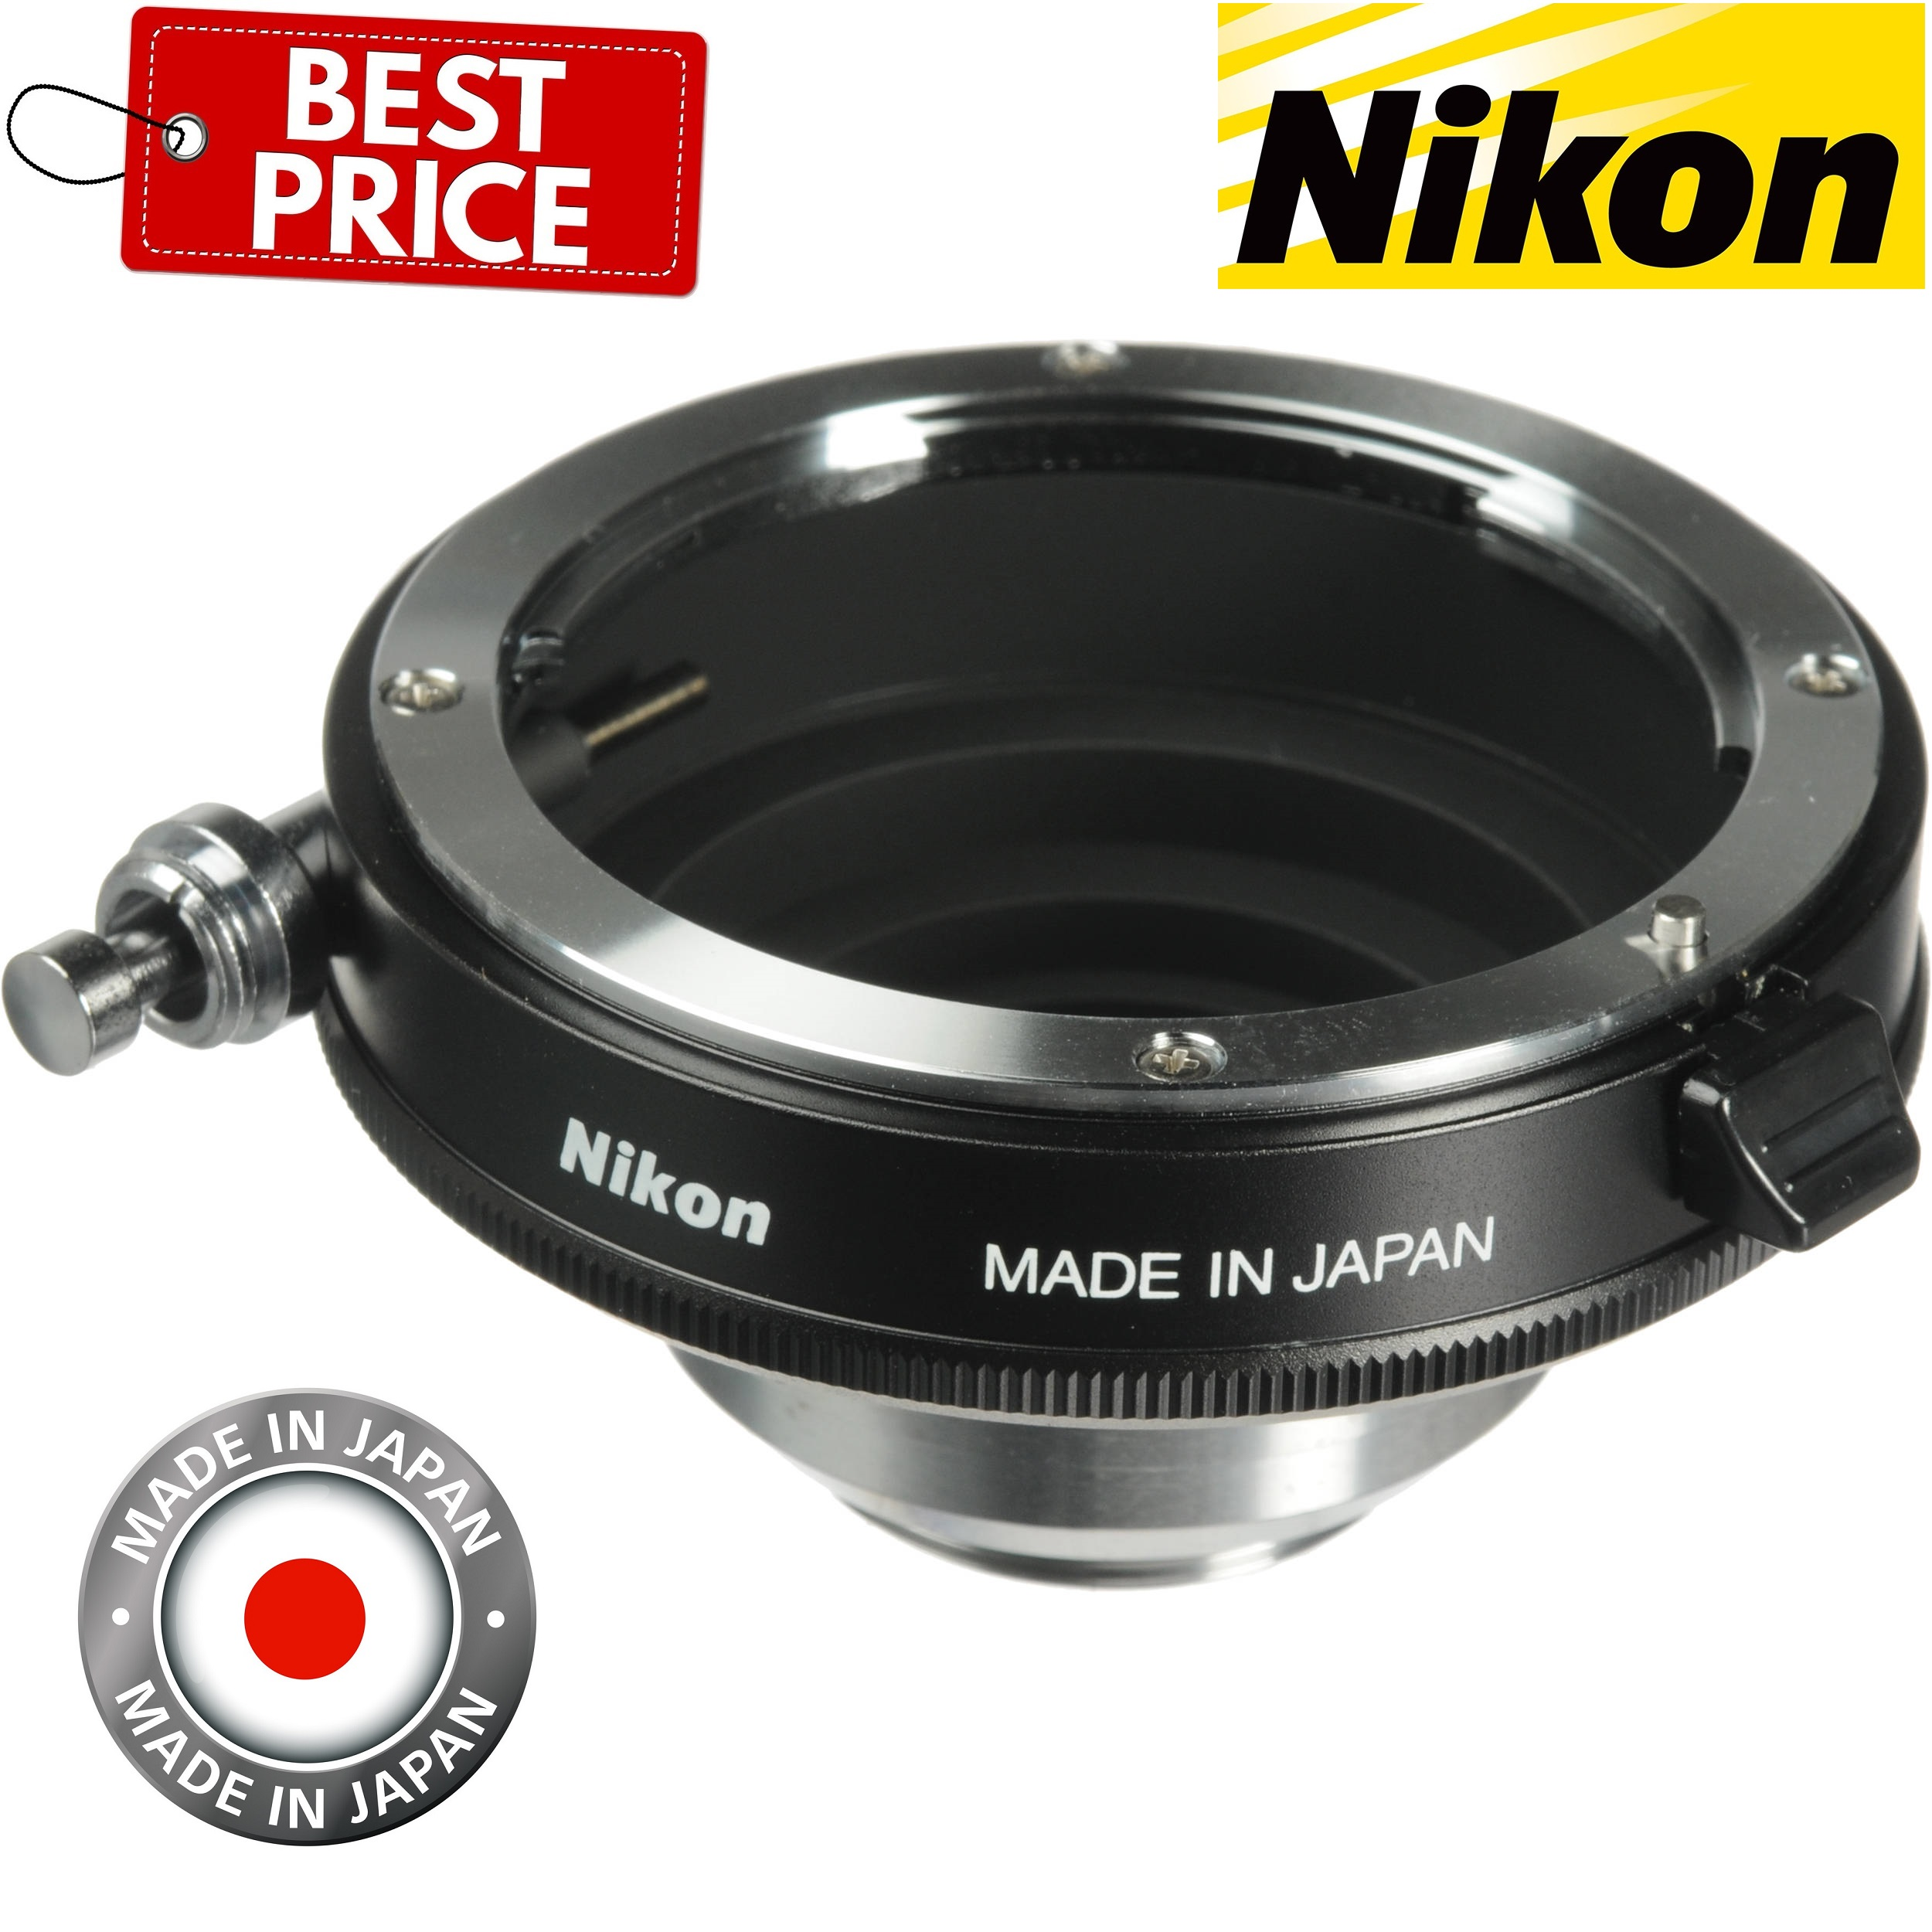 Nikon F to C_Mount Lens Mounting Adapter For Nikon Lens